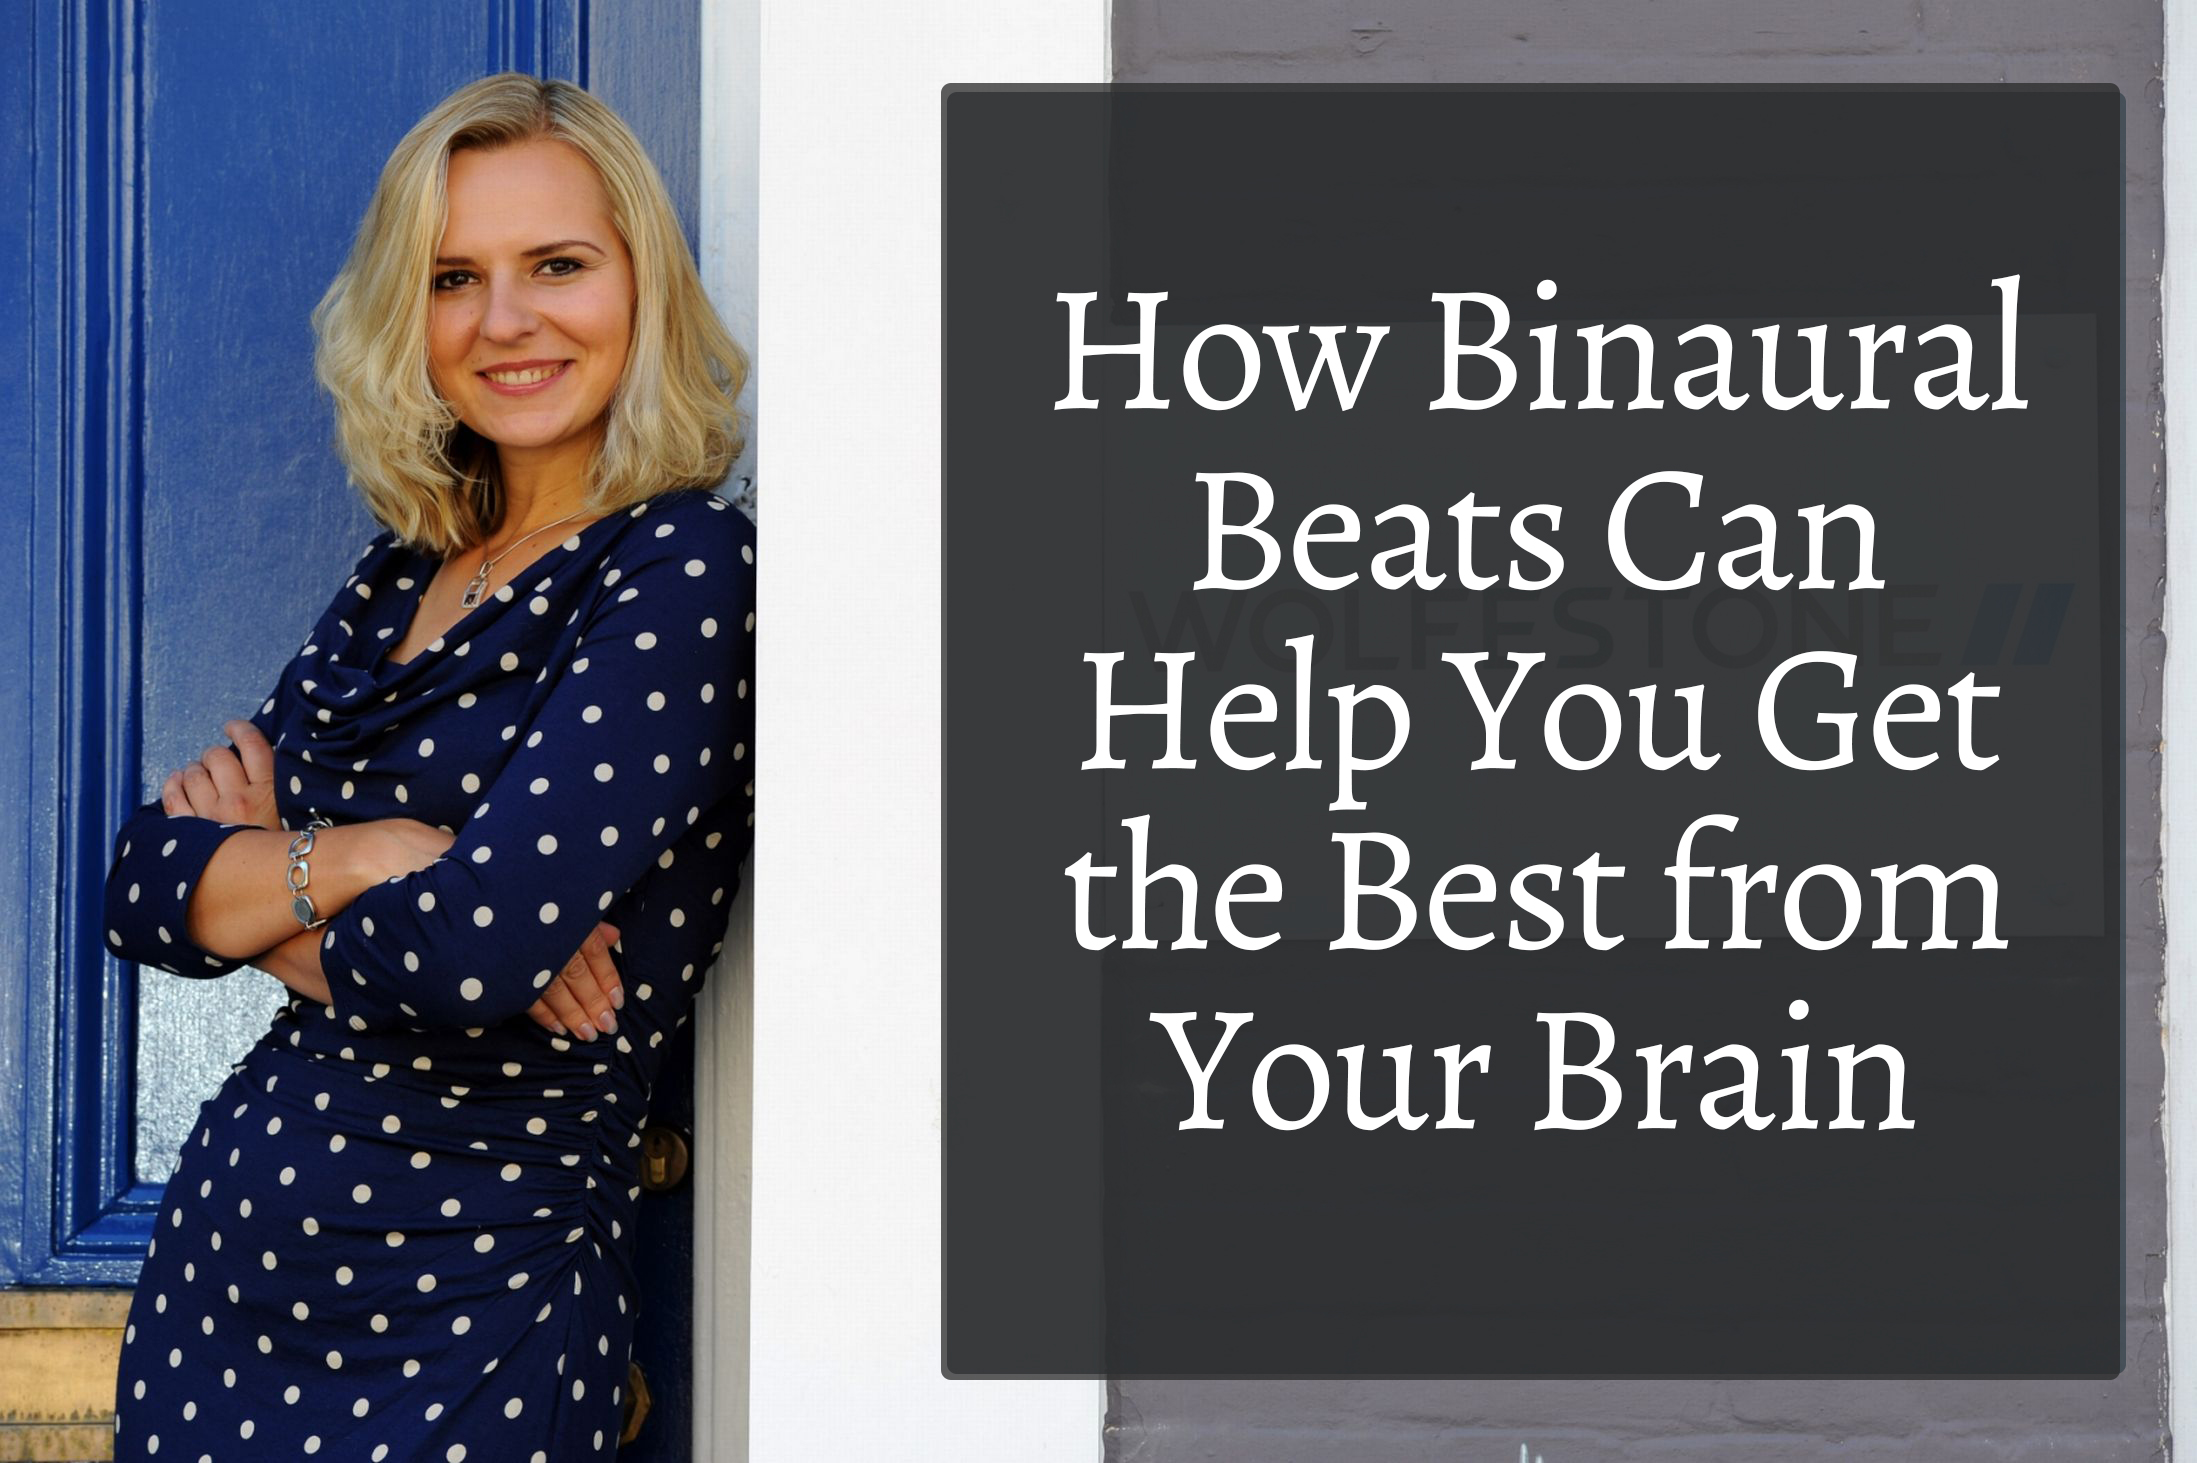 Binaural beats can help you get the best from your brain